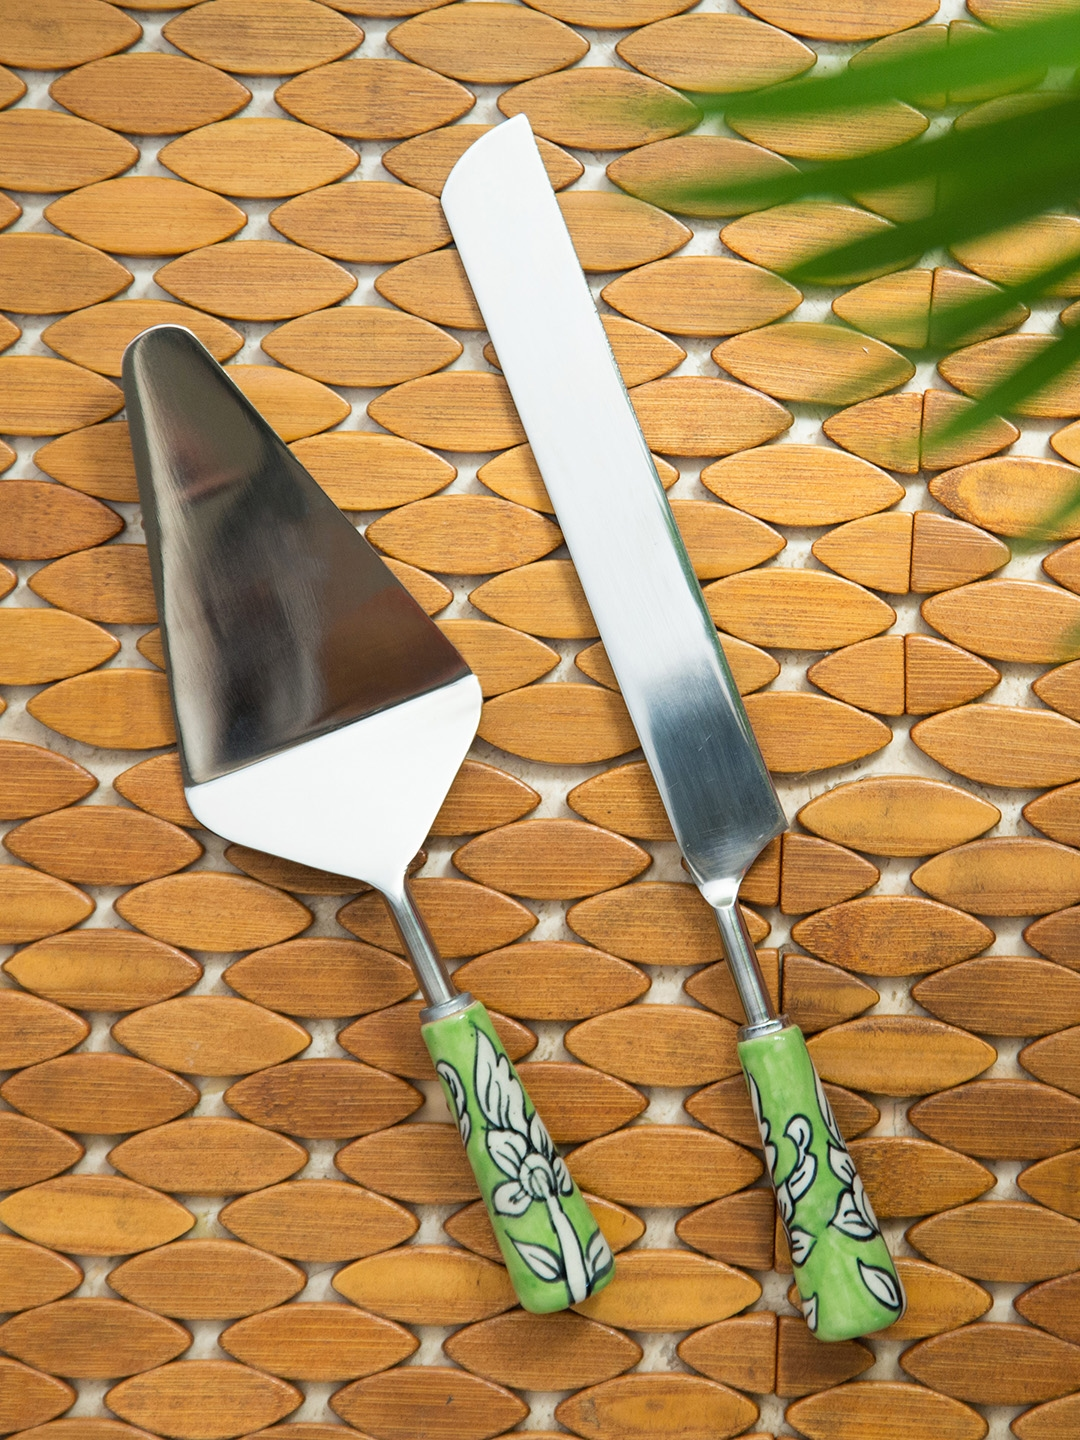 ExclusiveLane Silver Toned 2 Pieces Hand Painted Stainless Steel Cake Server   Knife Set